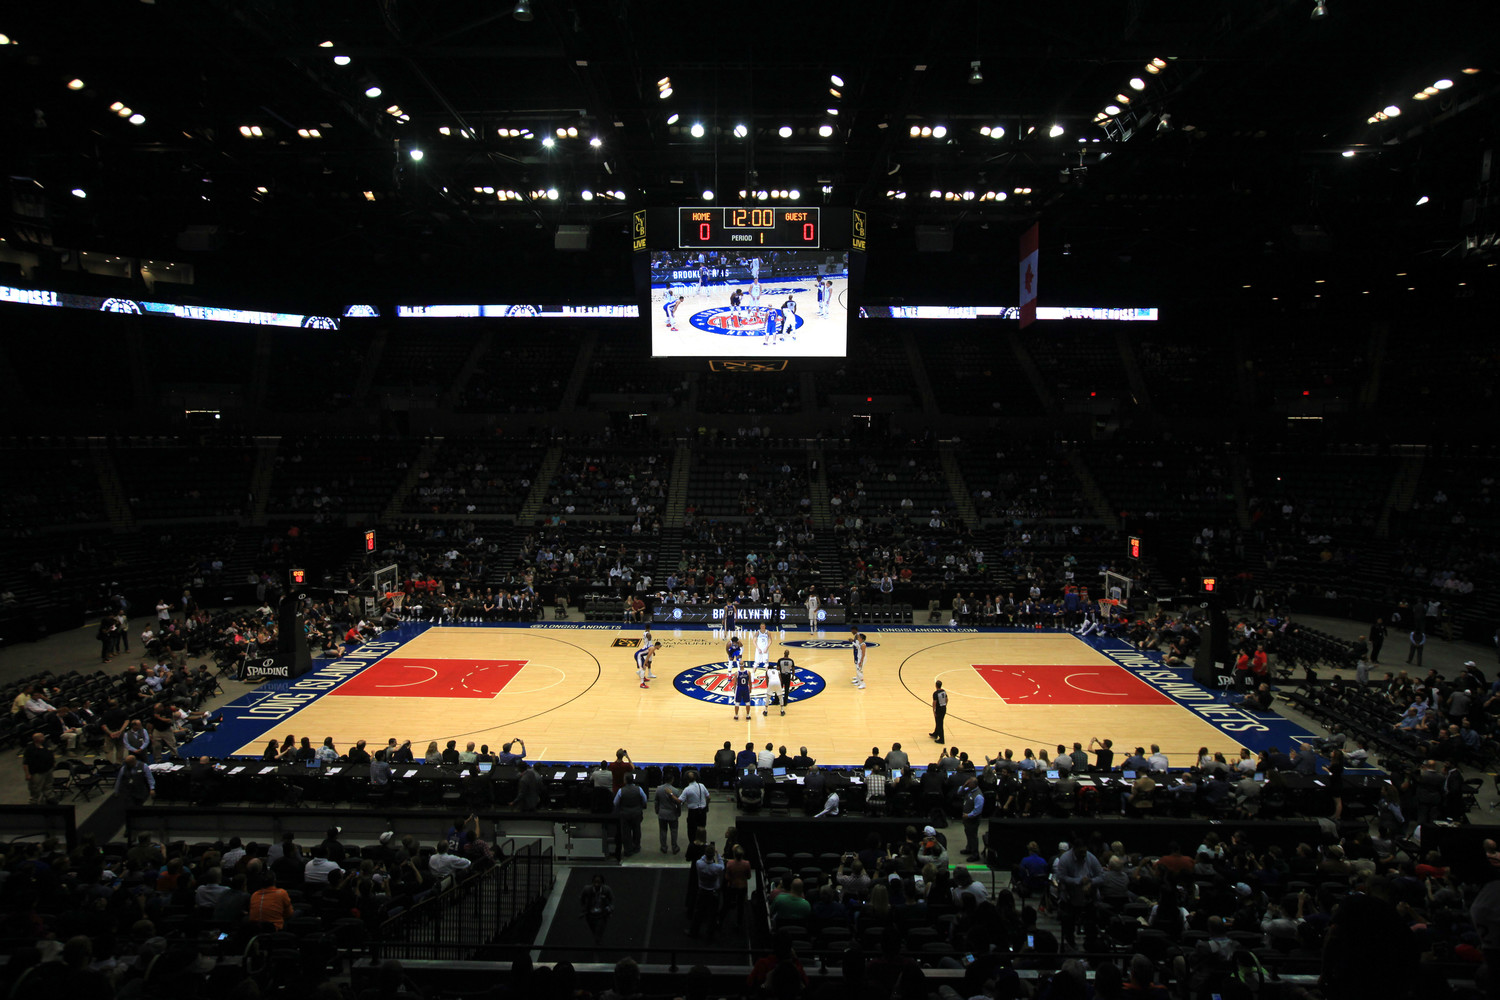 The court at NYCB LIVE Nassau Veterans Memorial Coliseum.